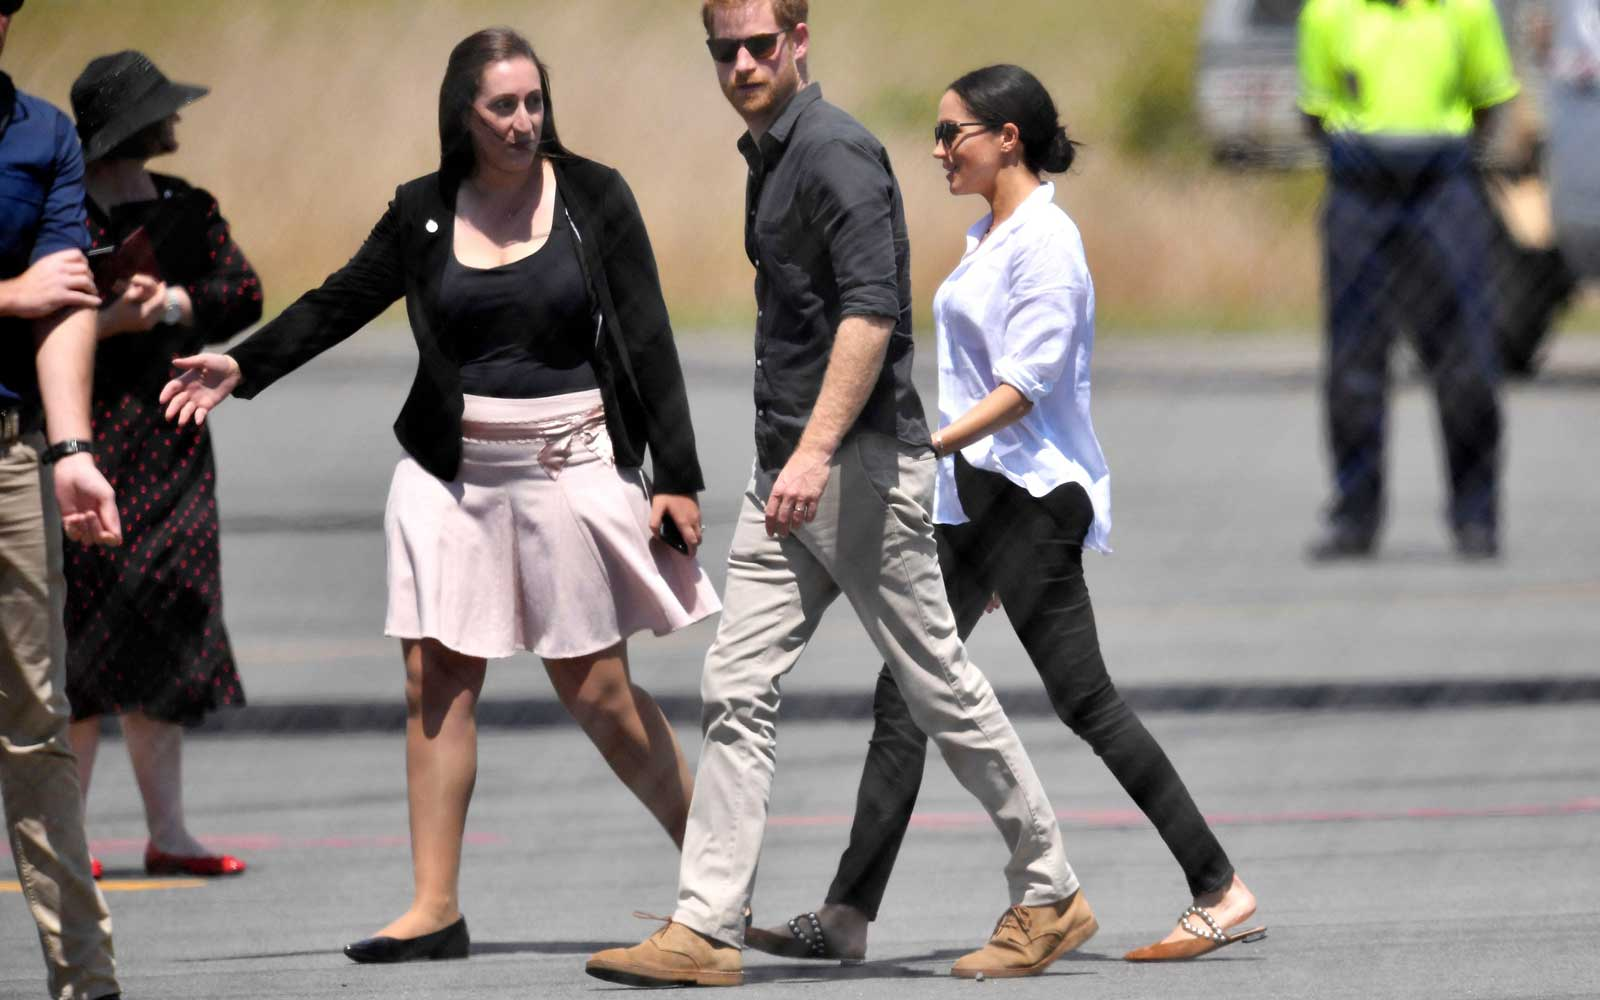 Britain's Prince Harry (C), the Duke of Sussex, and his wife Meghan (R), the Duchess of Sussex, prepare to board a plane at Hervey Bay Airport in Hervey Bay, Australia, 23 October 2018.